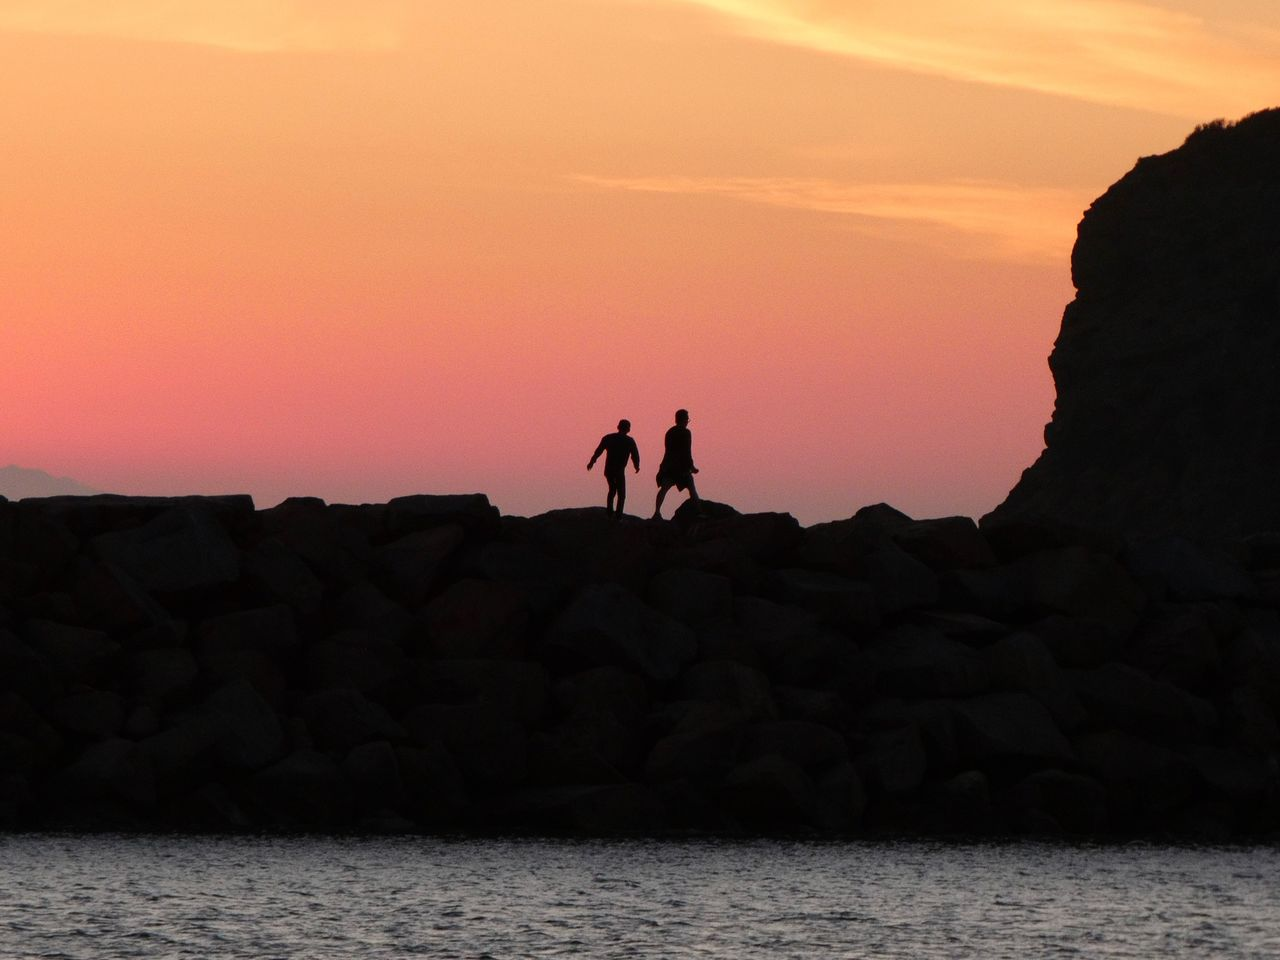 Silhouette People On Rock By Sea Against Sky During Sunset